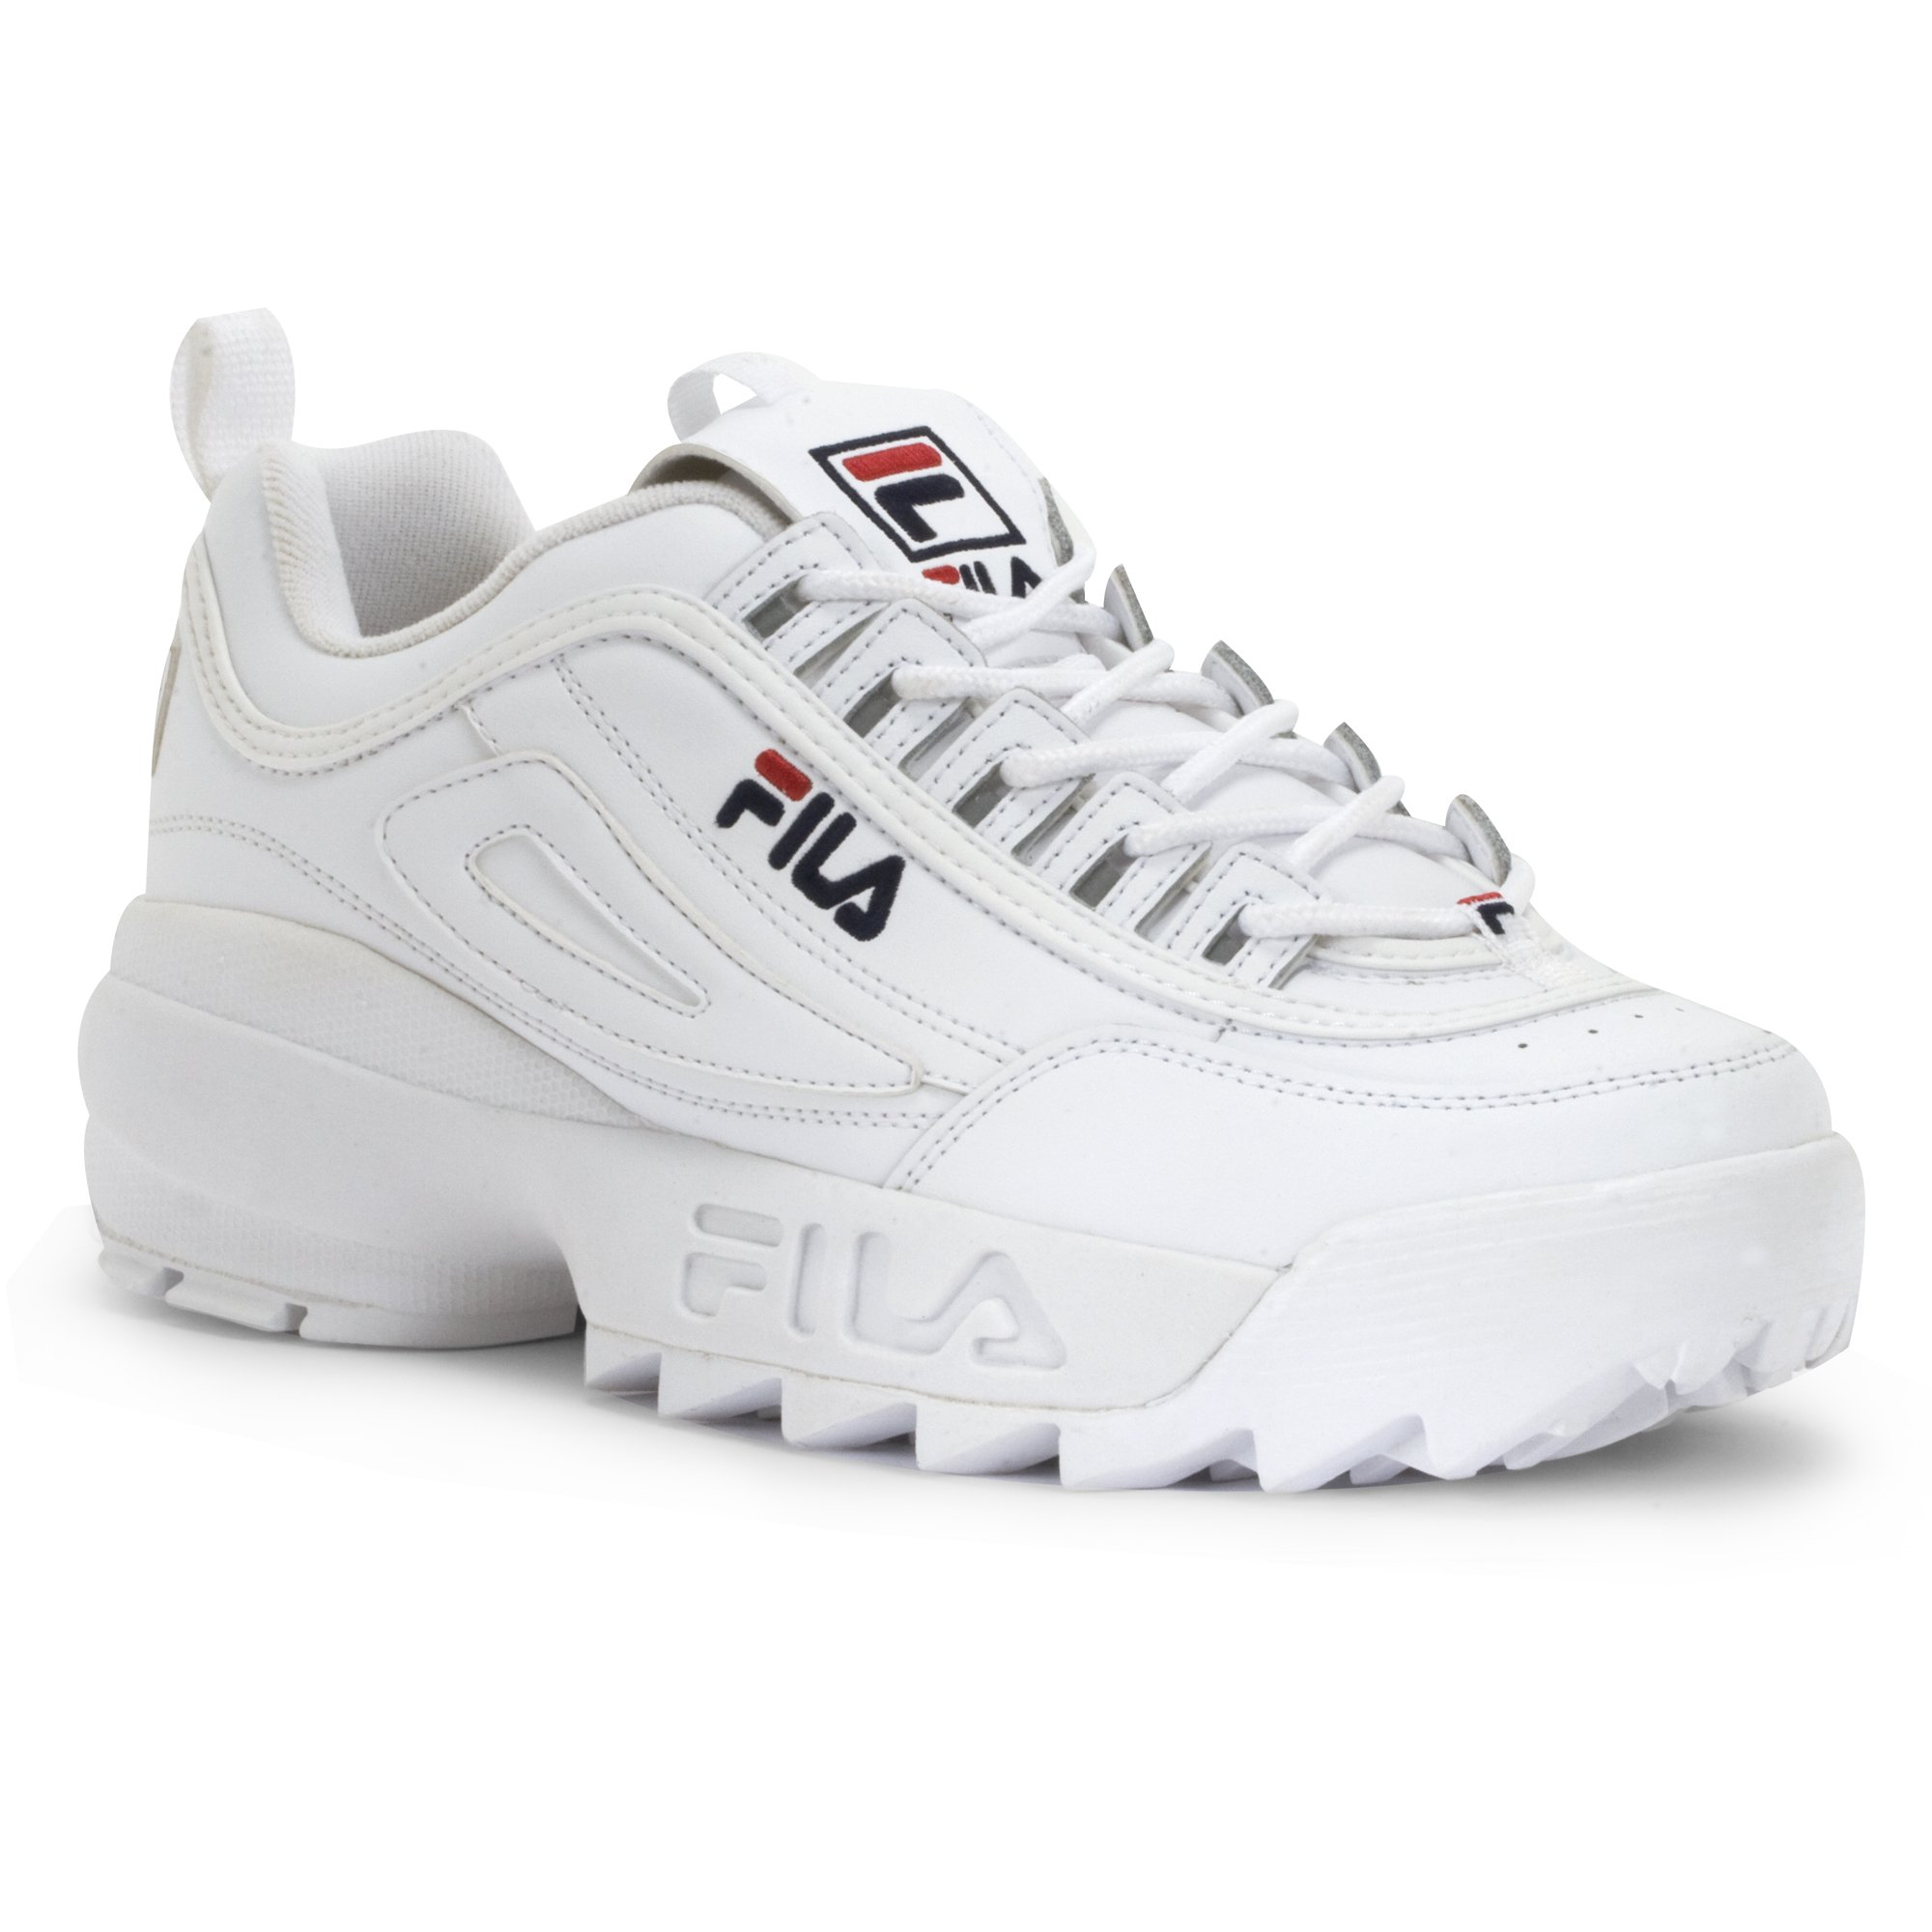 fce653efc295 Galleon - Fila Men s Disruptor II Inspired Sneakers White 14 M